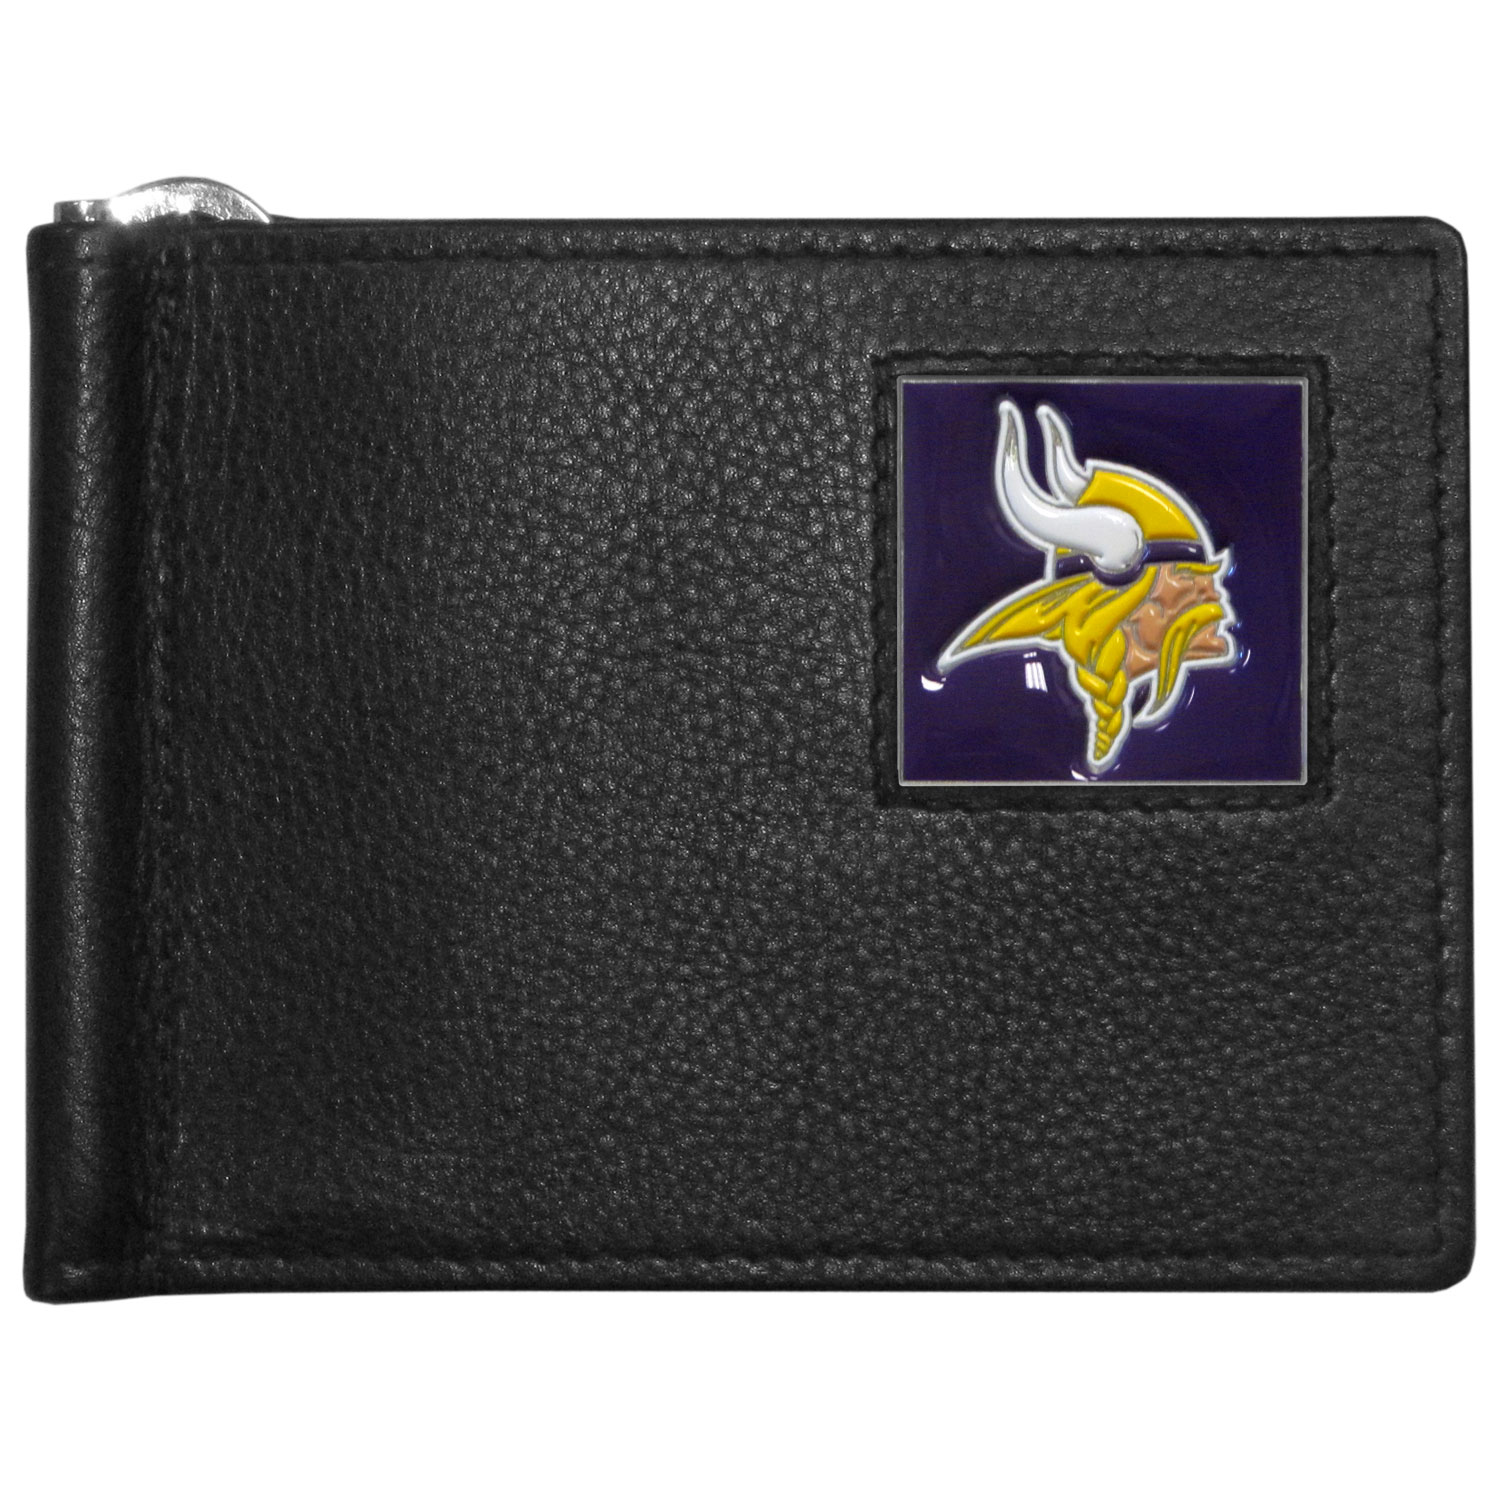 Minnesota Vikings Leather Bill Clip Wallet - This cool new style wallet features an inner, metal bill clip that lips up for easy access. The super slim wallet holds tons of stuff with ample pockets, credit card slots & windowed ID slot.  The wallet is made of genuine fine grain leather and it finished with a metal Minnesota Vikings emblem. The wallet is shipped in gift box packaging.